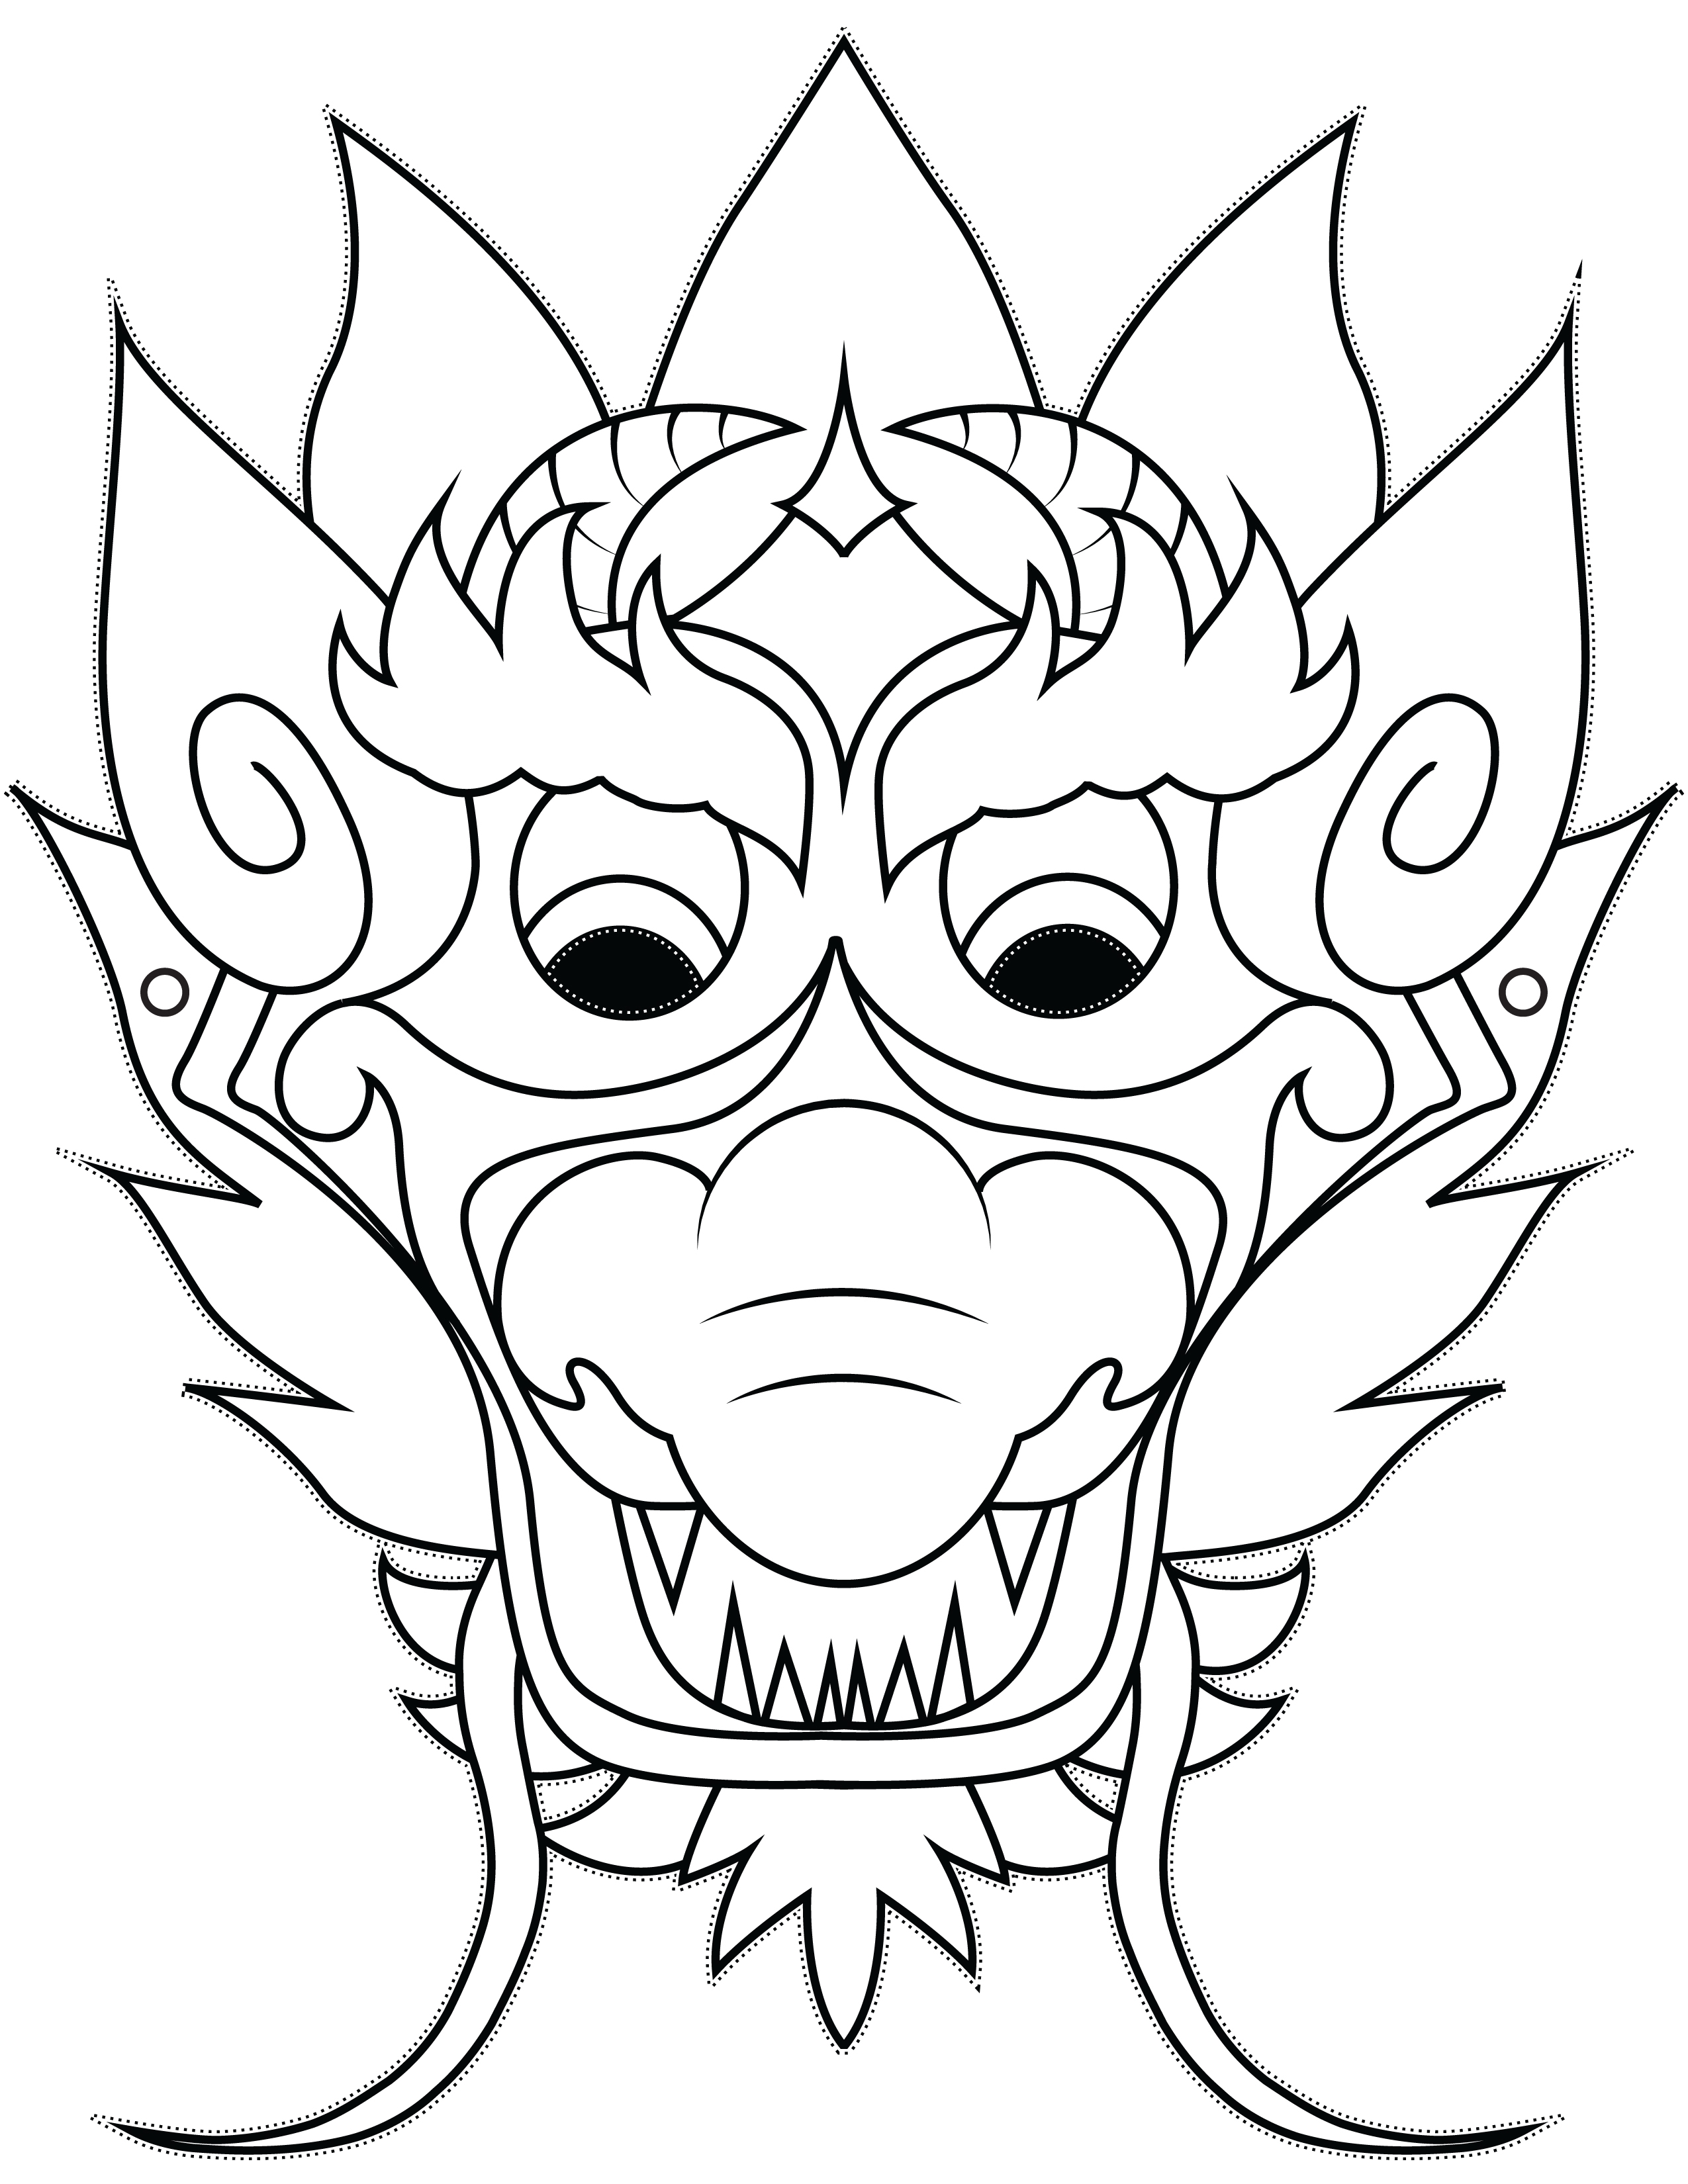 Pics Photos - Free Printable Chinese Dragon Mask Template